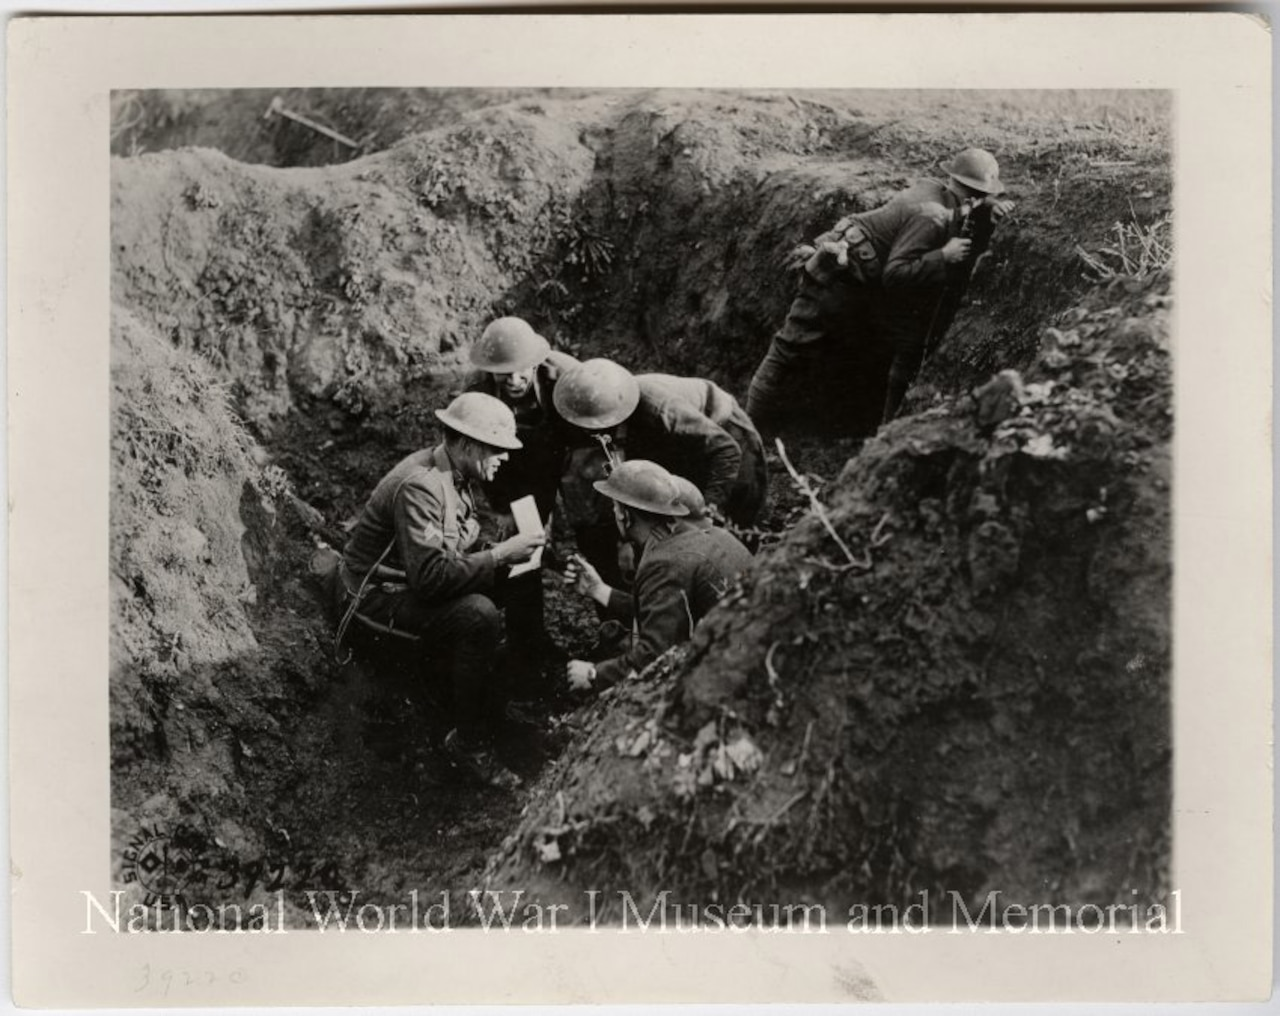 American troops discuss strategy in shell hole in France.